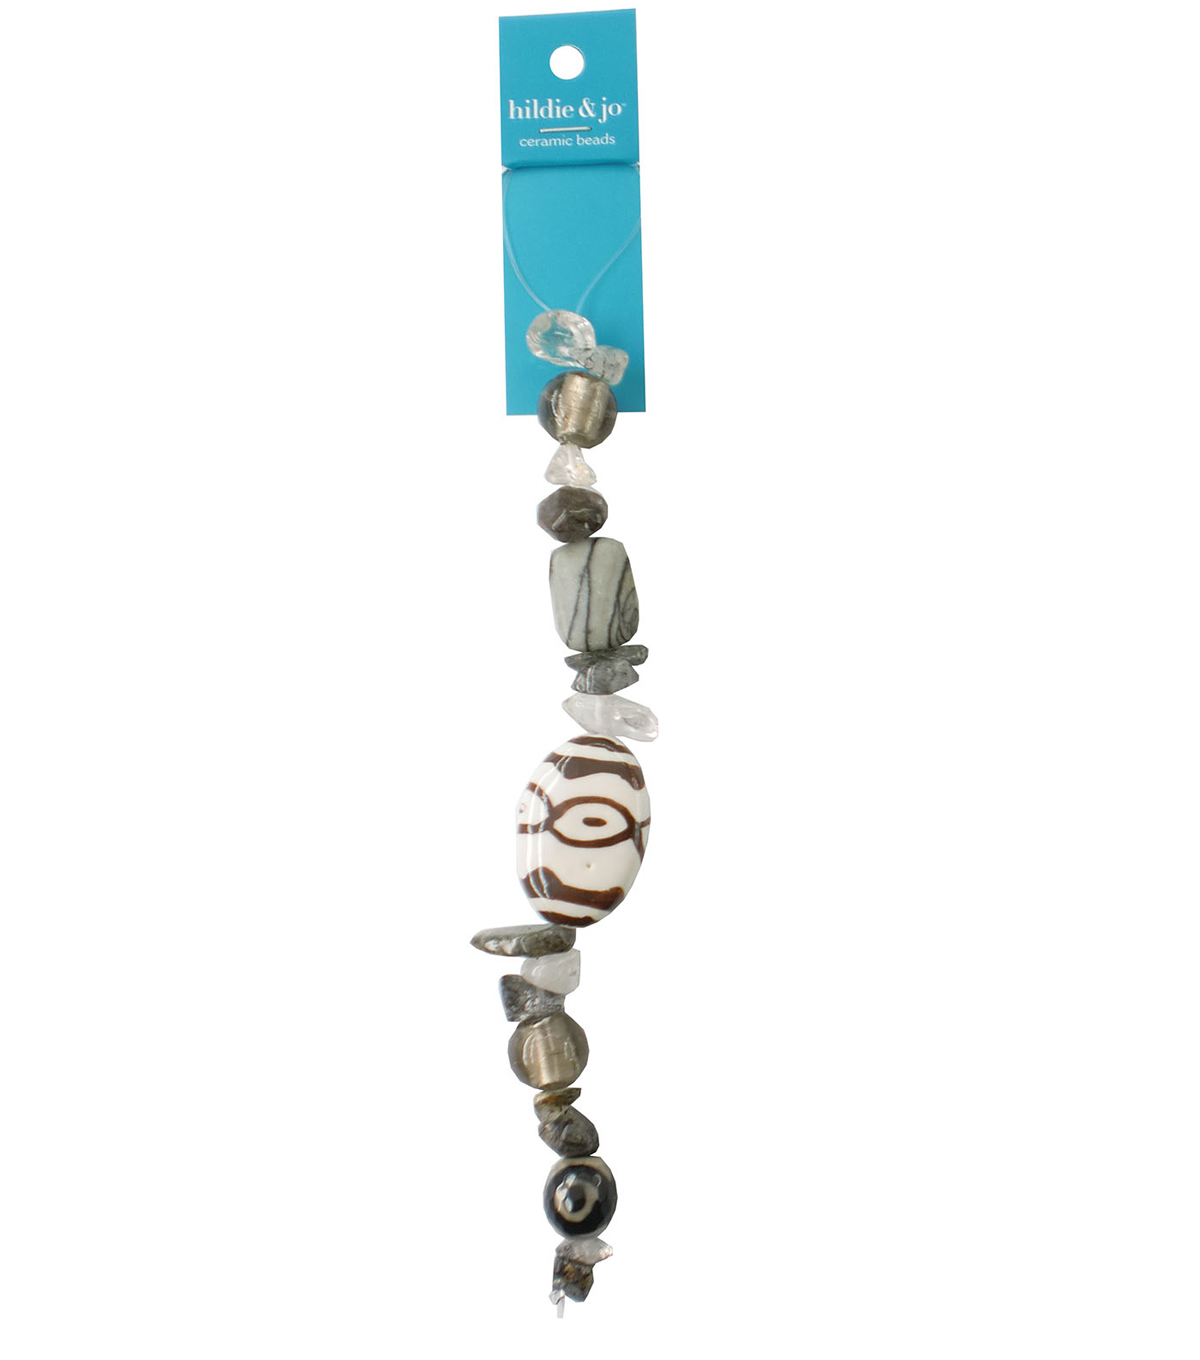 hildie & jo™ 7\u0027\u0027 Ceramic Beads Strand-White, Gray & Brown